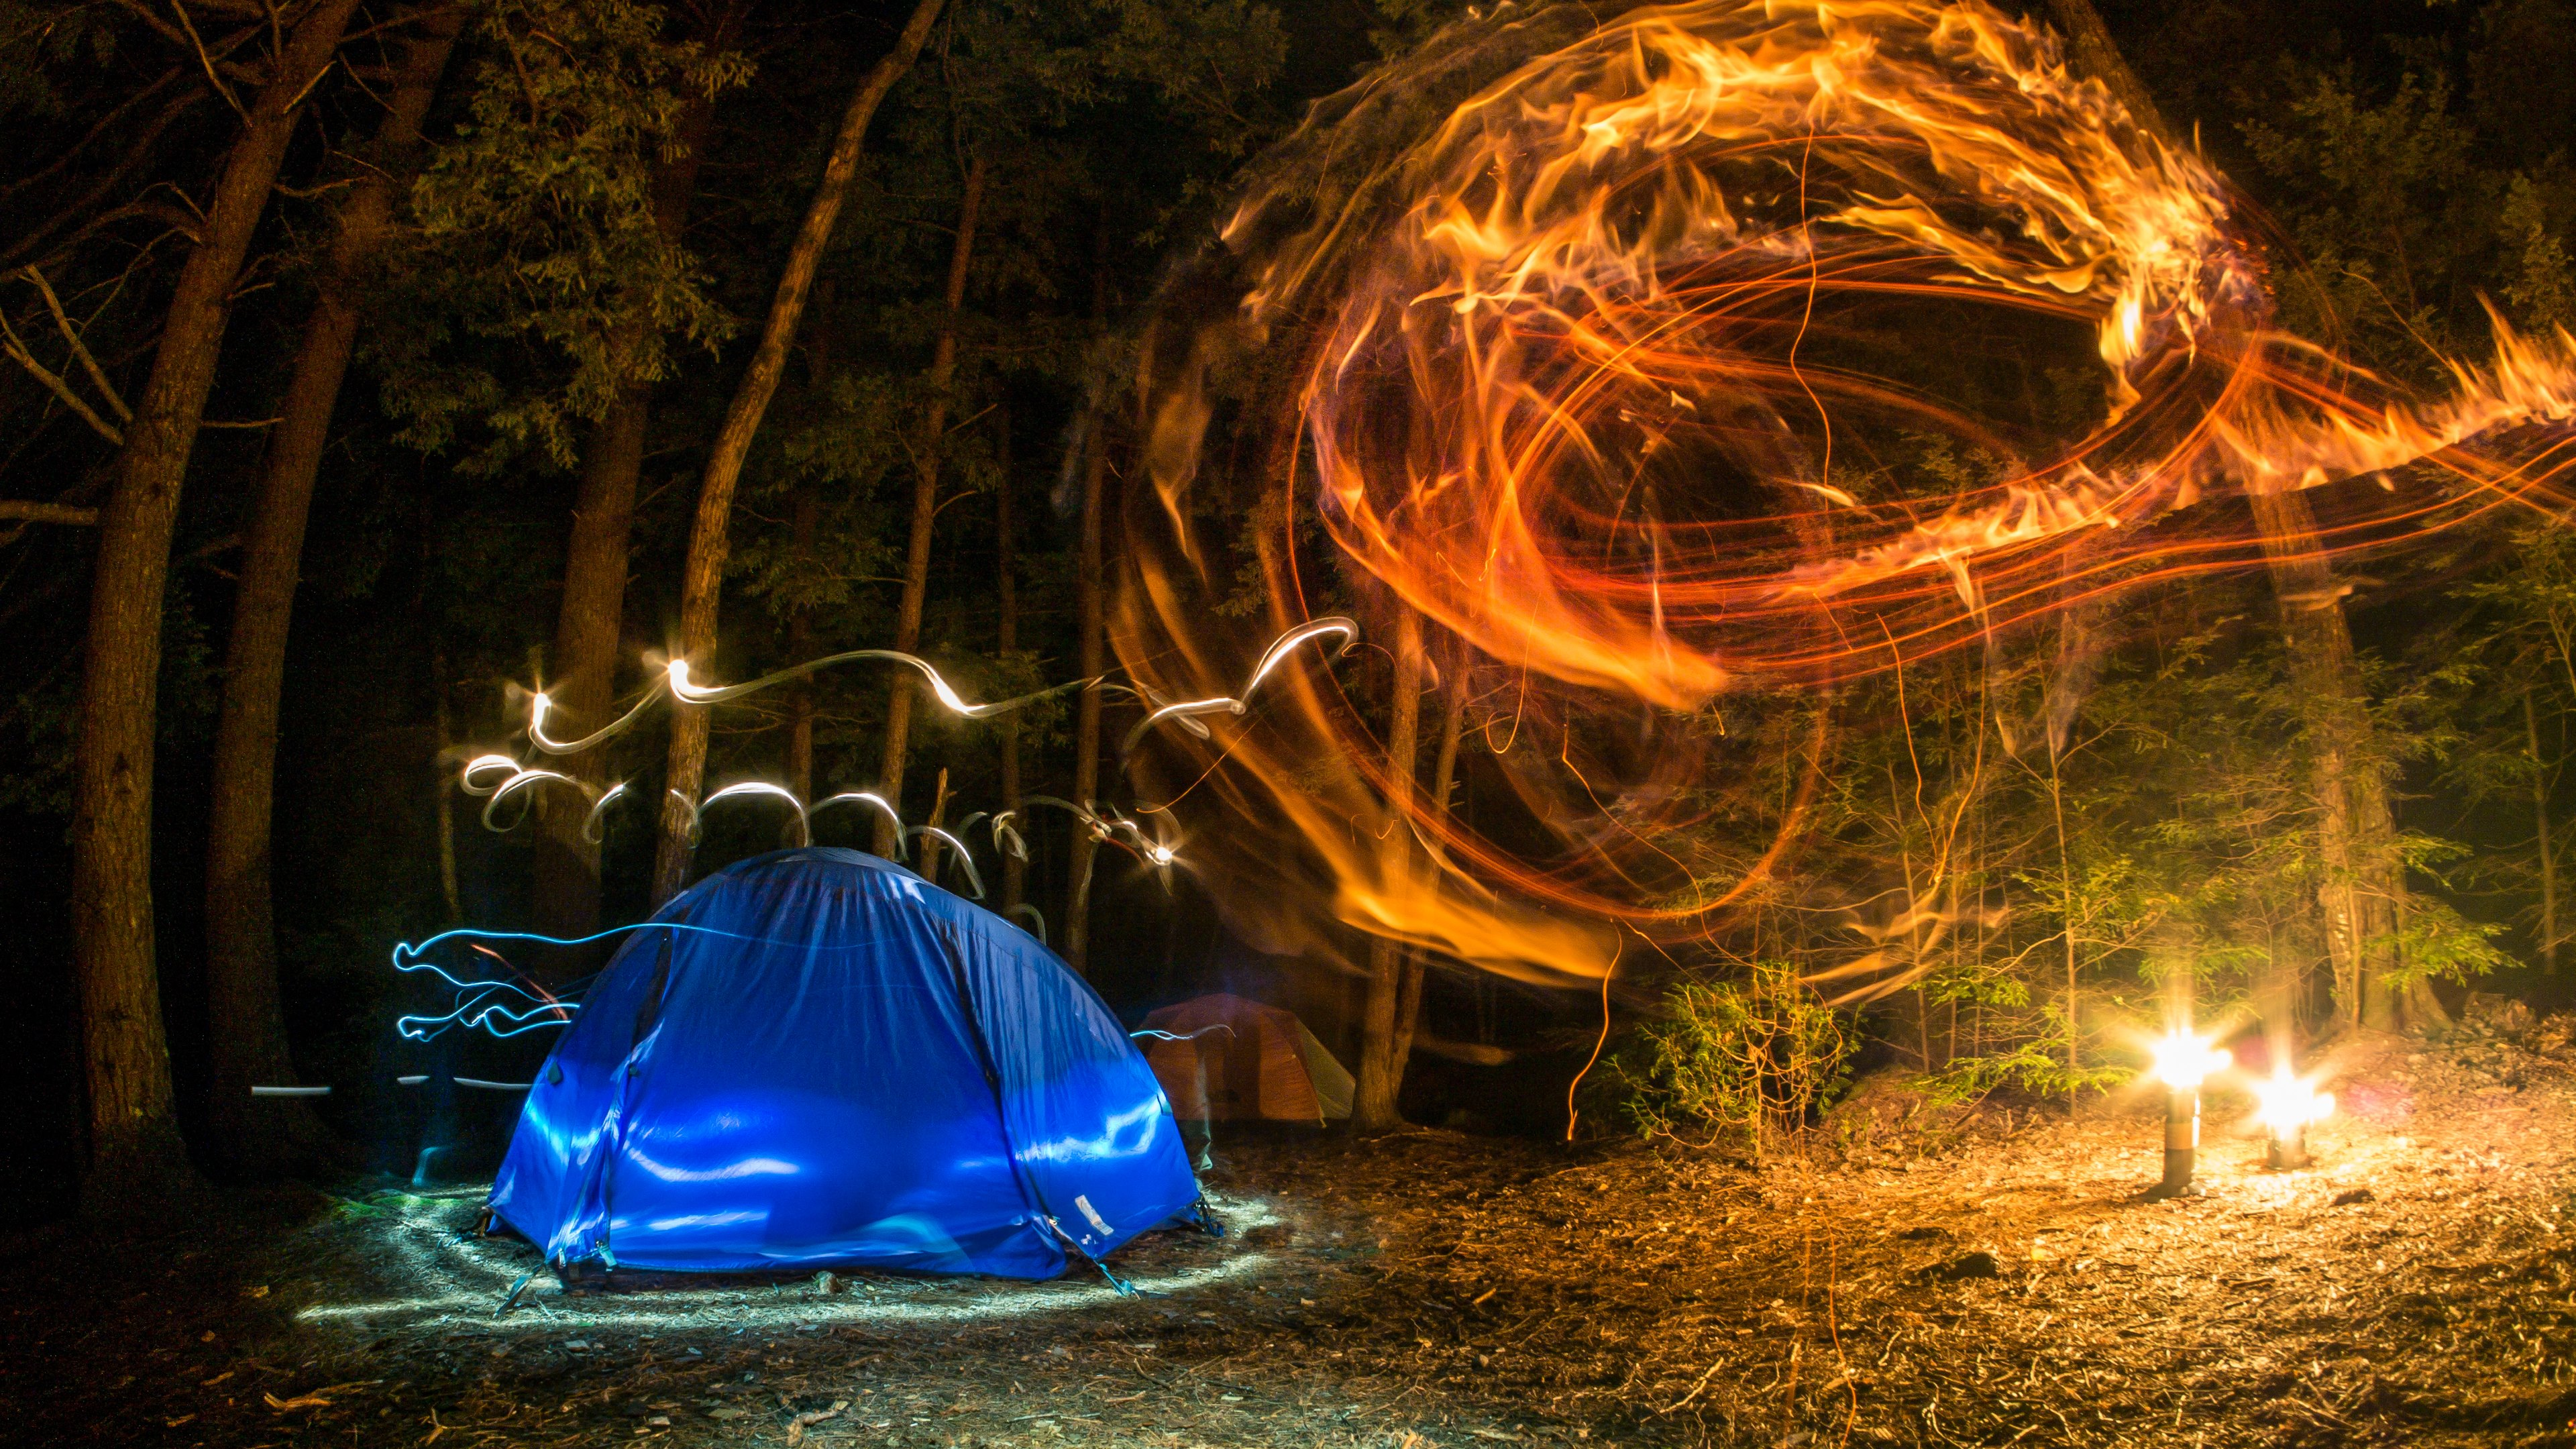 camping forest night lights creativity wallpapers